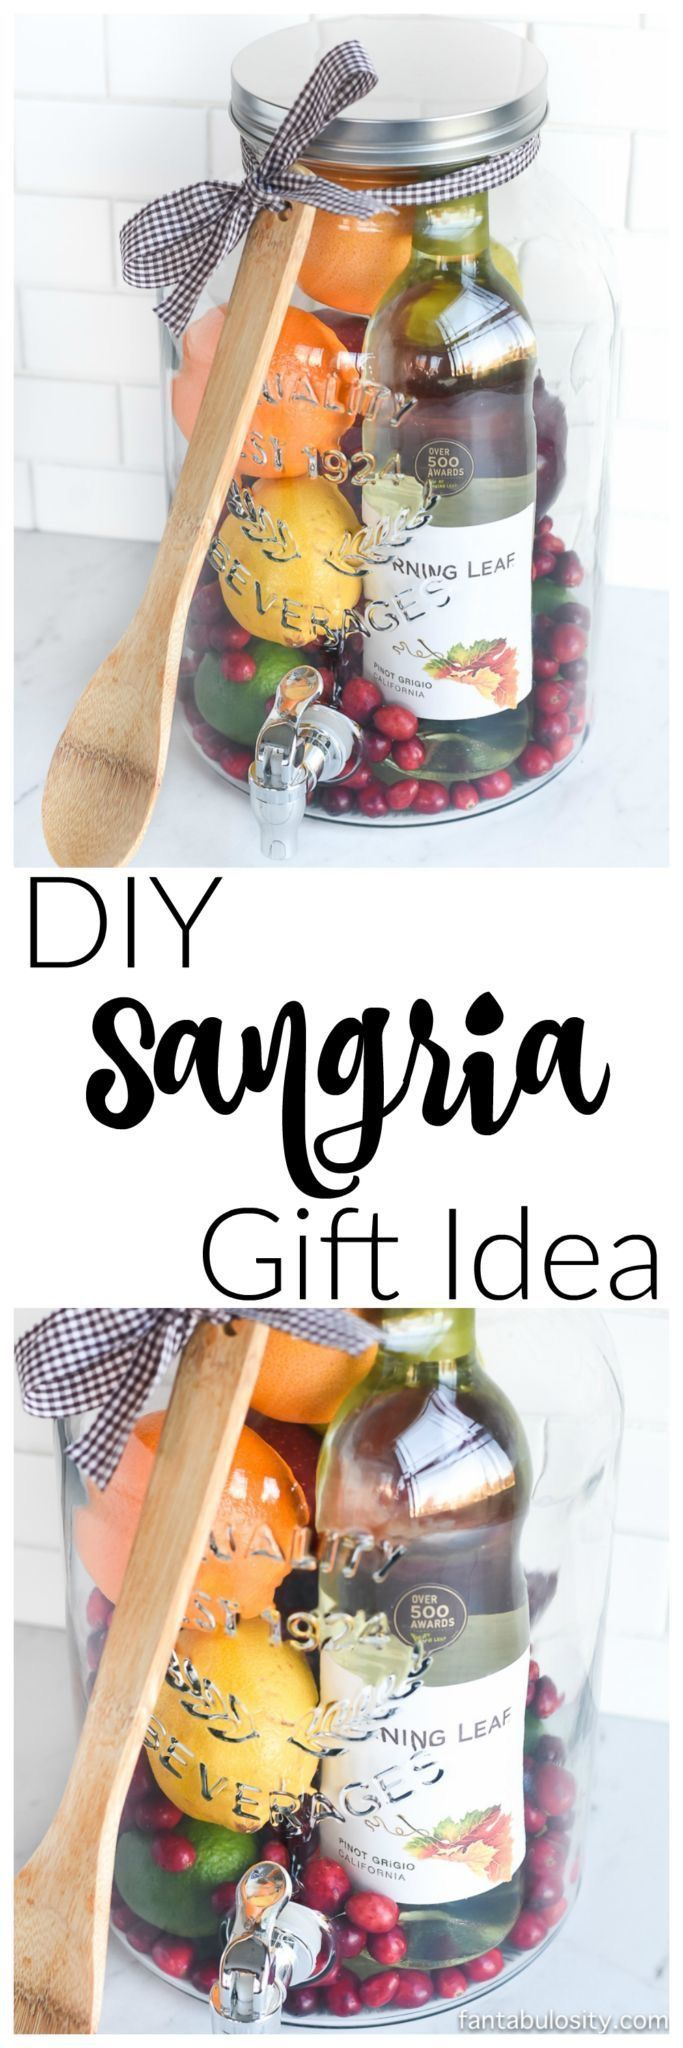 Sangria!! Perfect gift idea. House warming, birthday anything